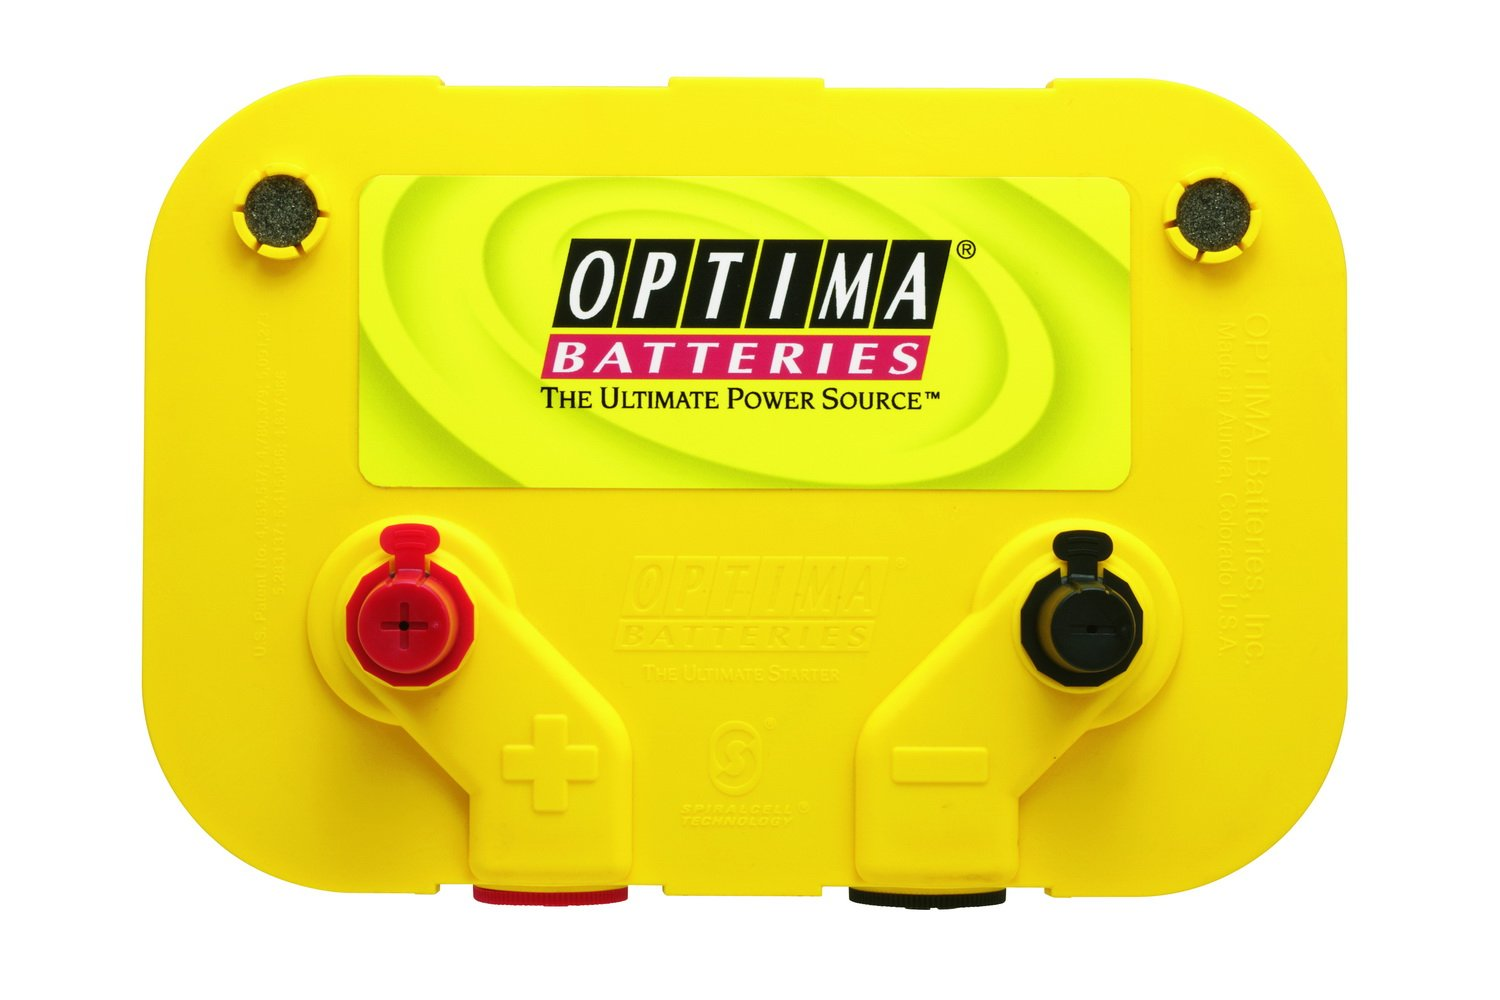 Optima Batteries 8014 045 D34 78 Yellowtop Dual Purpose Back Gt Imgs For Dry Cell Battery Diagram Automotive